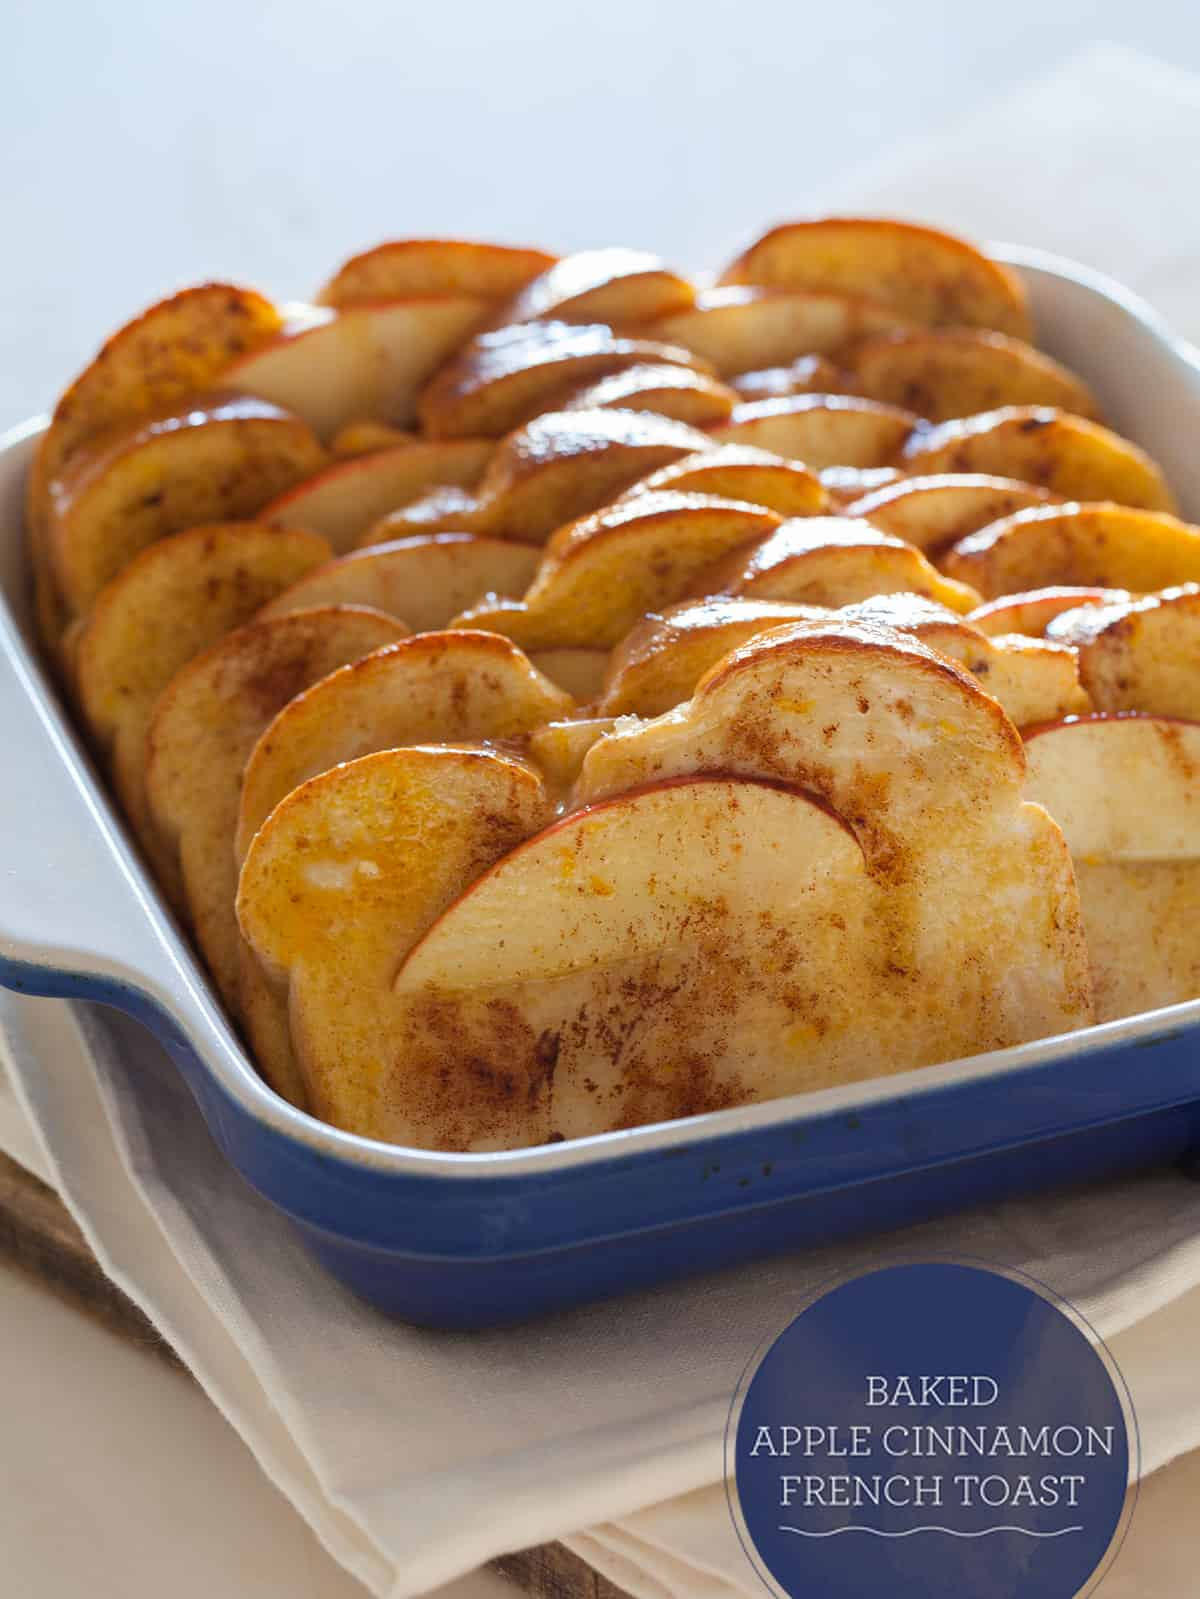 How to bake apples in the oven 49